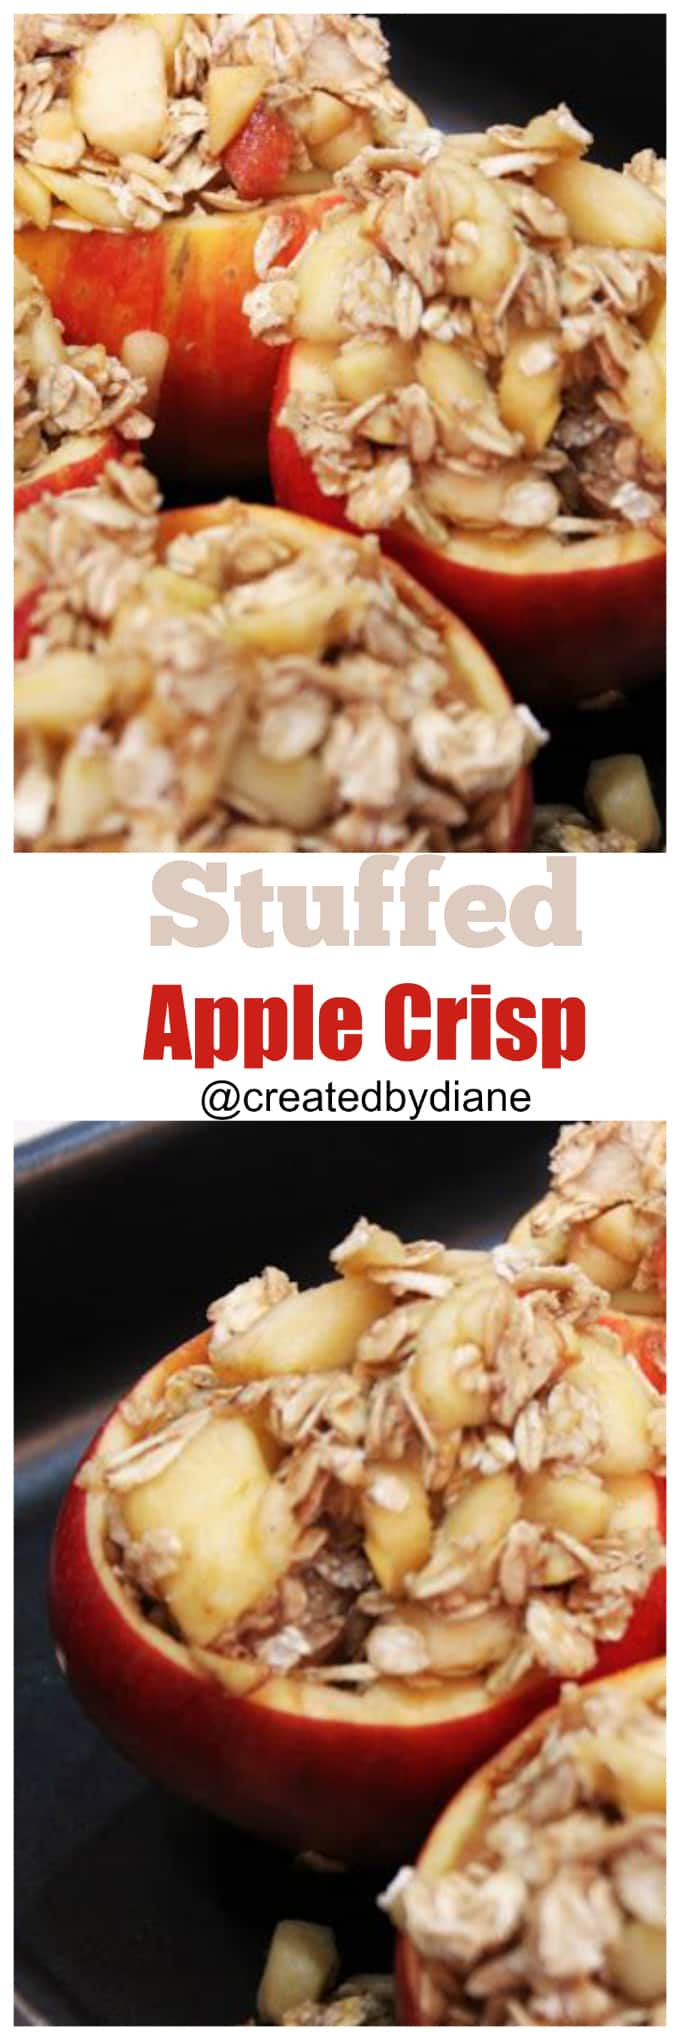 stuffed-apple-crisp-createdbydiane